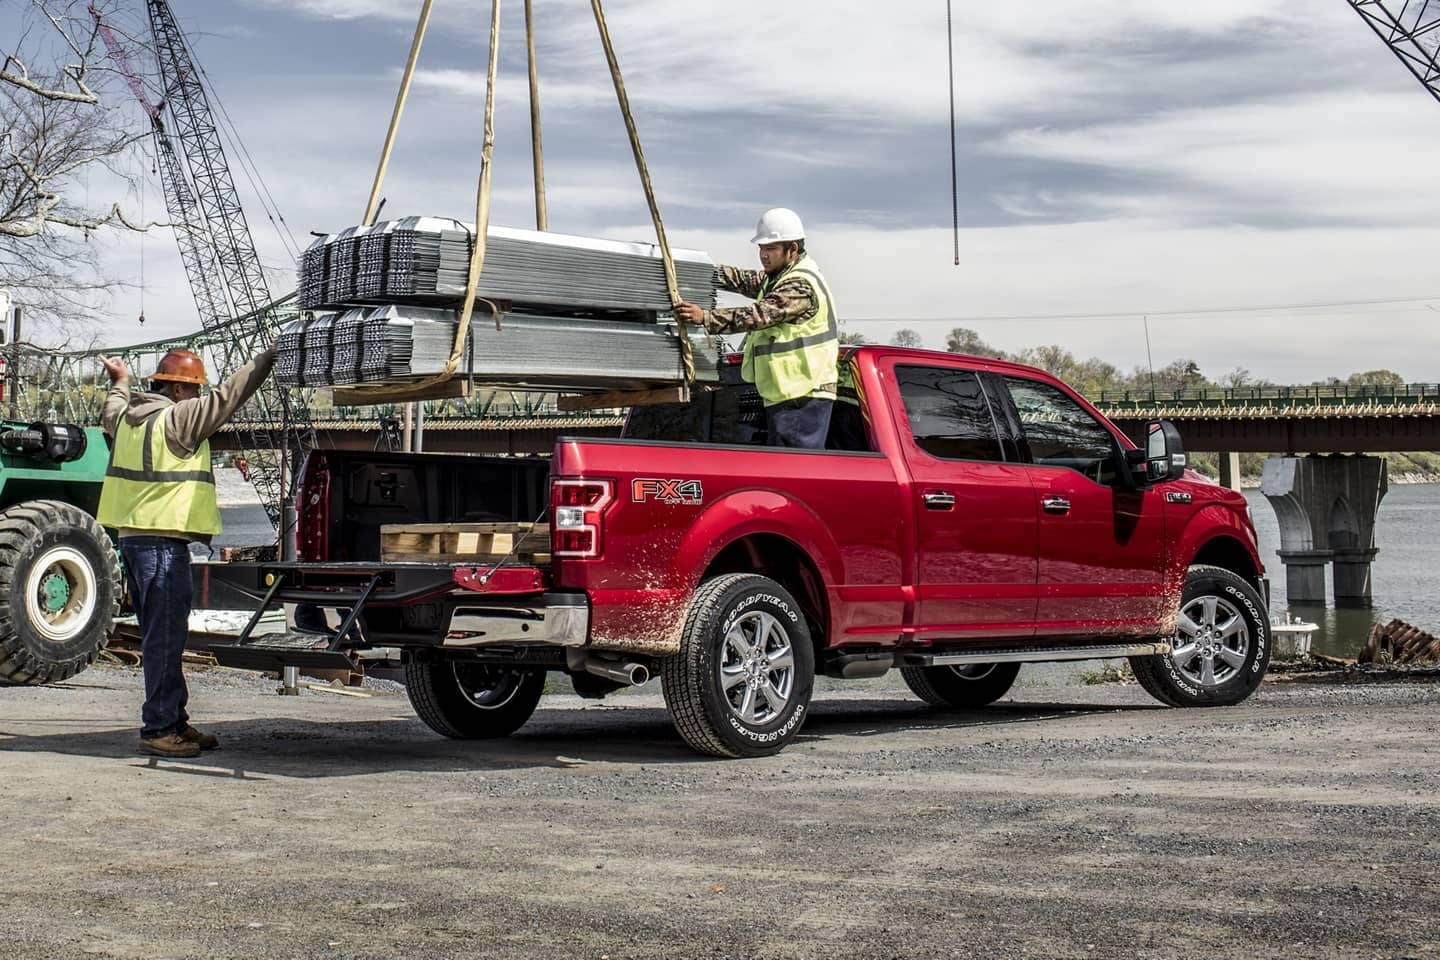 FORD F150 cab being loaded by construction workers